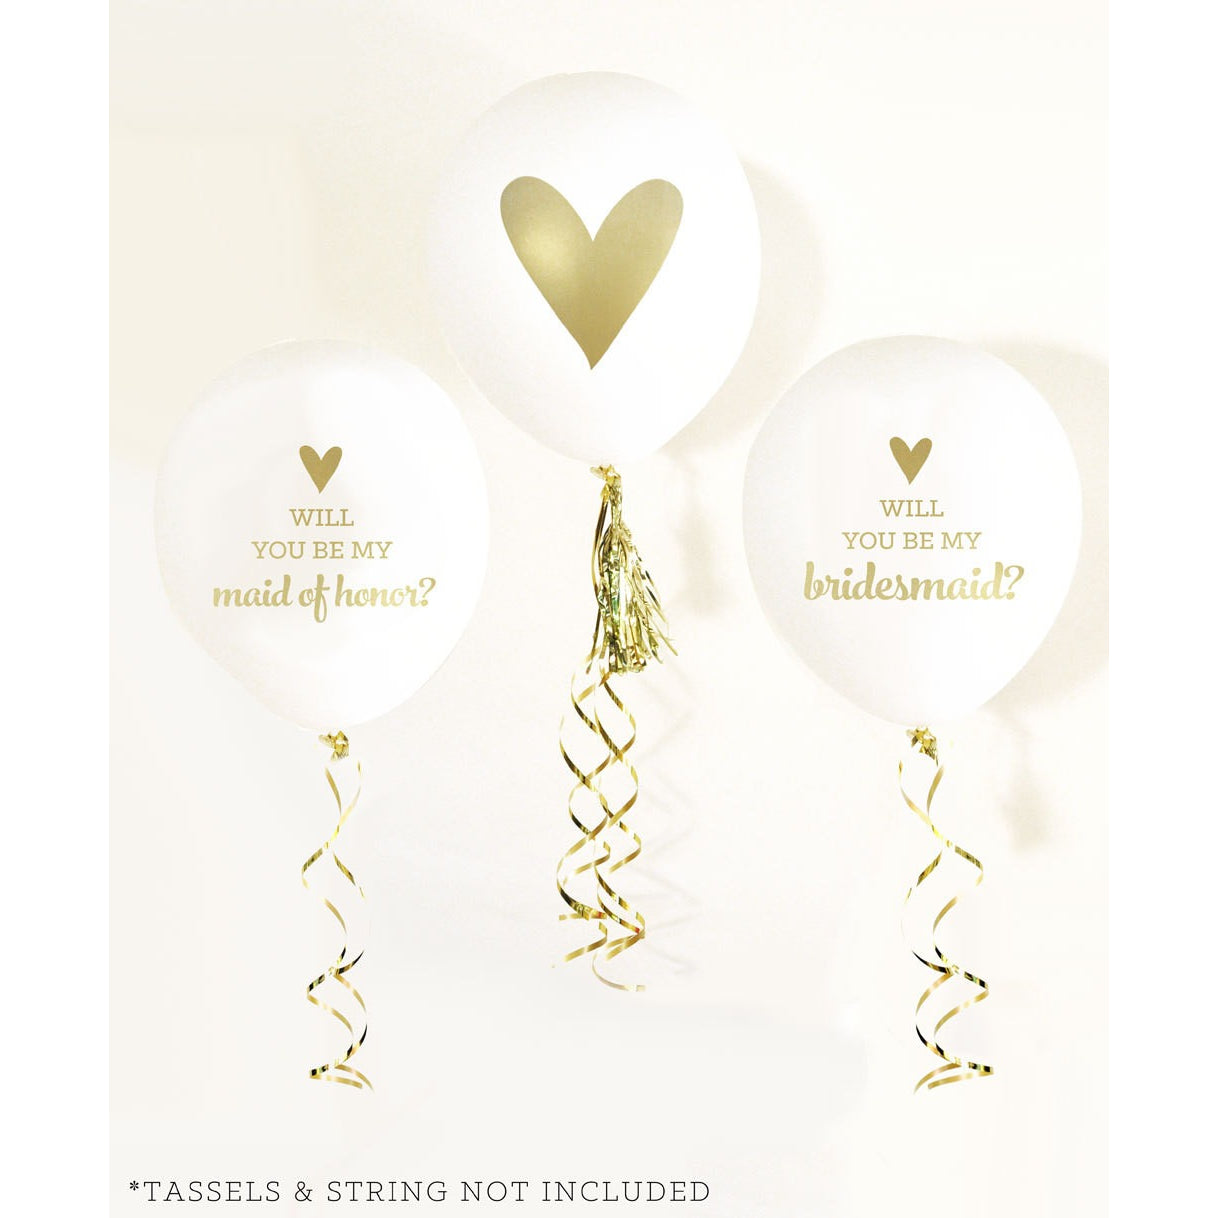 Will you be my Bridesmaid?  latex Balloons White and Gold Set of 4 - Tulle and Twig